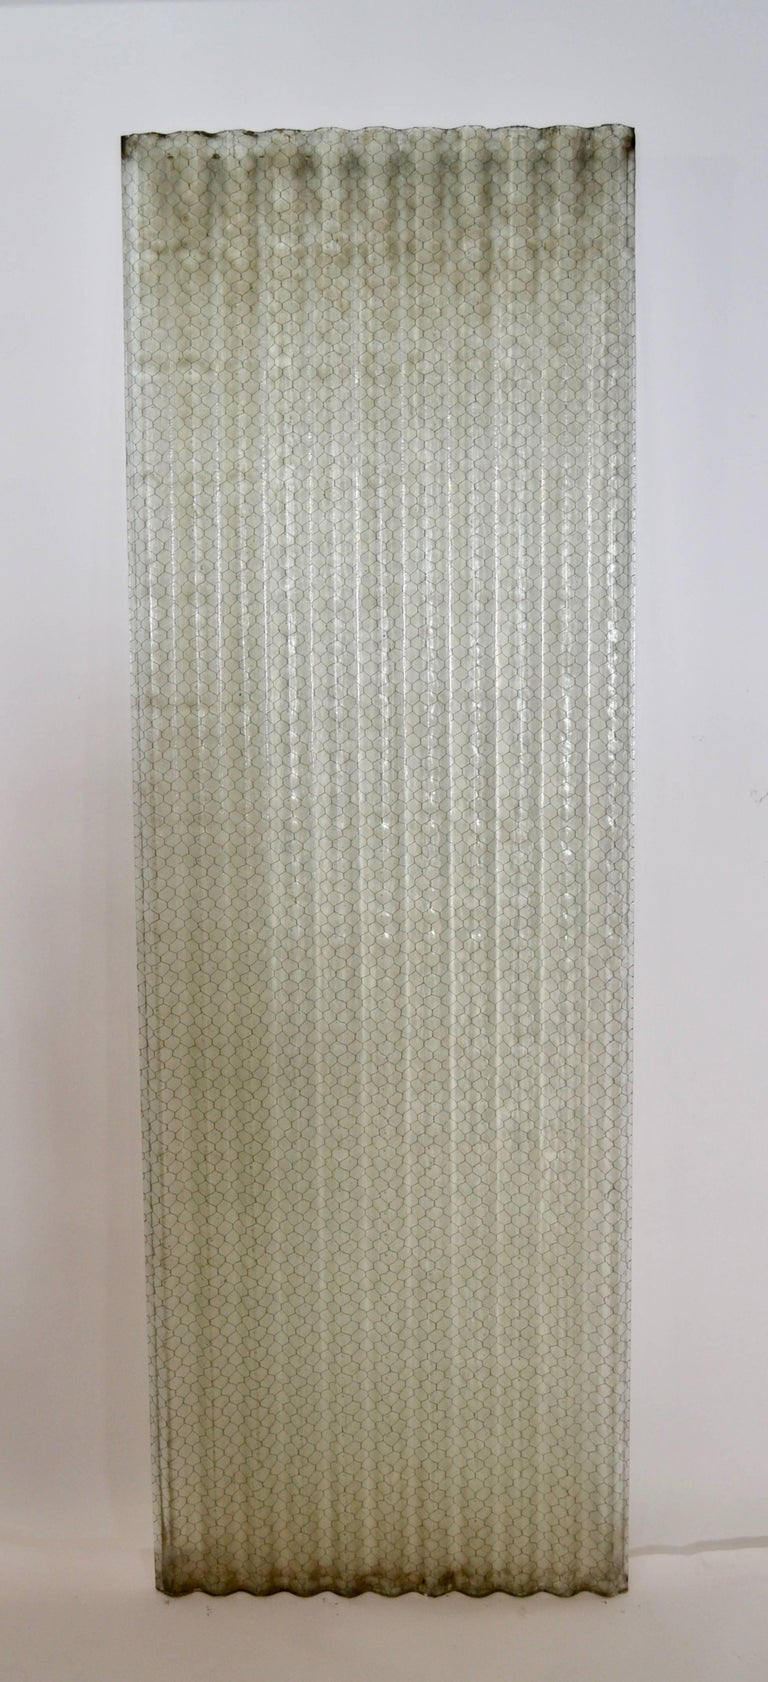 Corrugated Chicken Wire Glass Panels For Sale 2